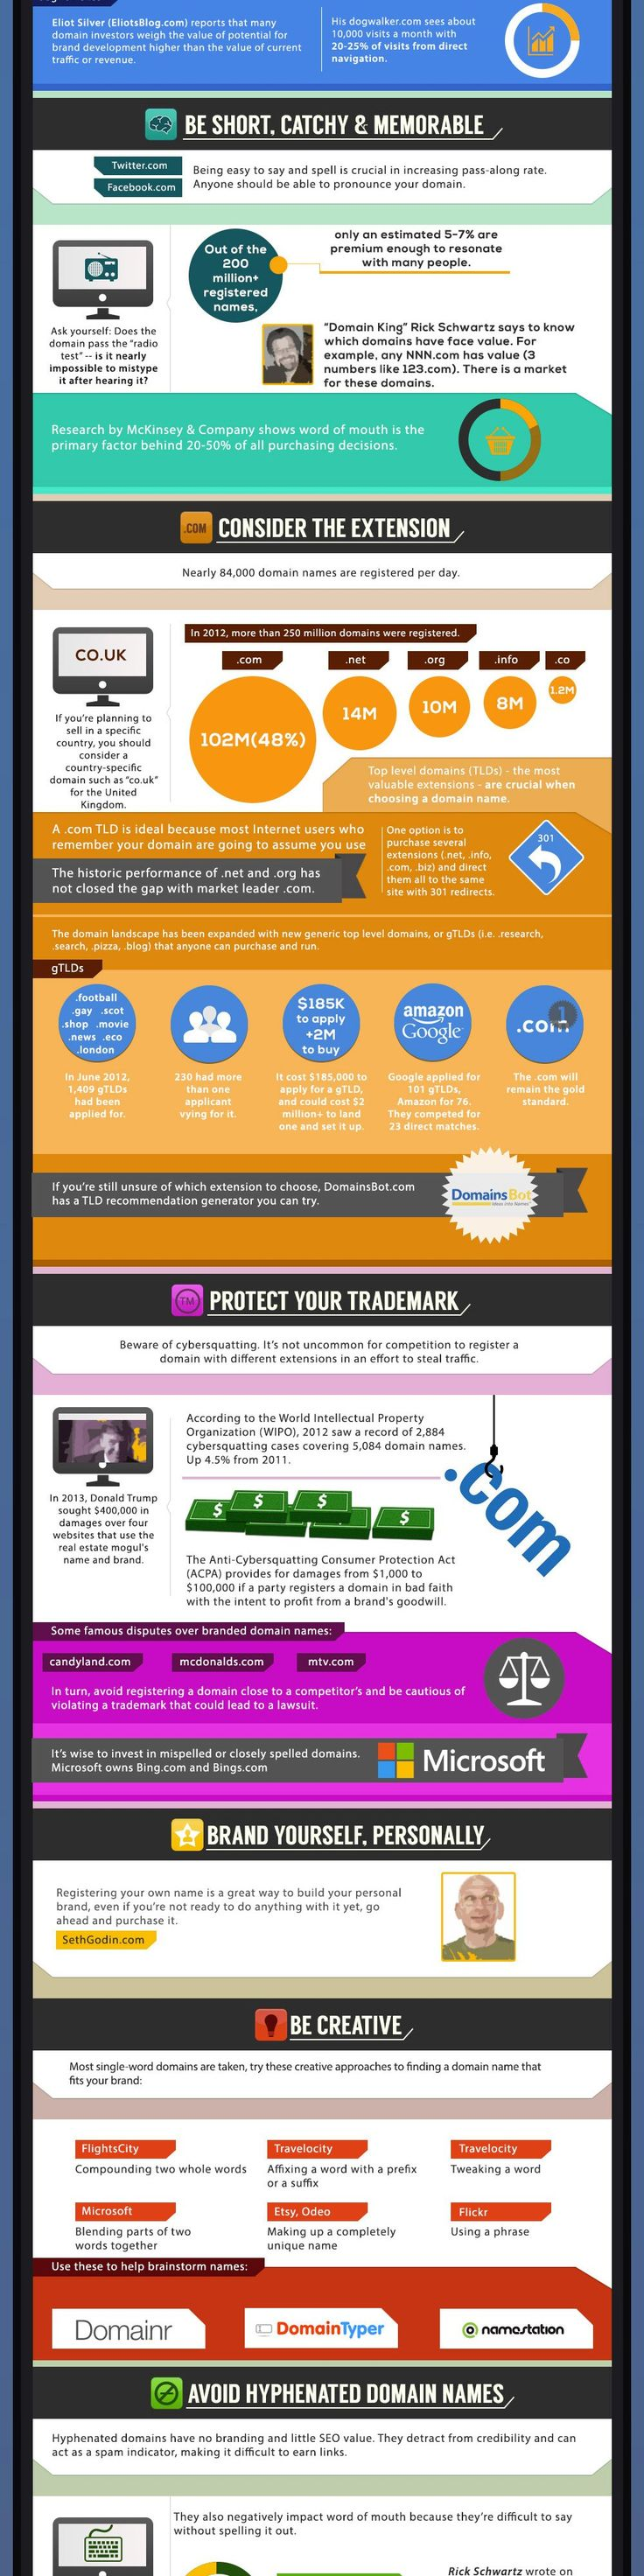 ★☯★ 9 Essential Elements of Choosing a #Domain Name - #Infographic ★☯★ @KathleenEDavis Nearly 84,000 new domain names are registered every day. For small-business owners, that means it's more difficult to create a domain name that your customers will remember while still protecting your trademark & your brand. Here are useful tips on how to create a short, catchy & memorable domain name #WTF #OMG #bizarre #Goodies #Odd #internet #web #social #media #socialmedia #network #Tech